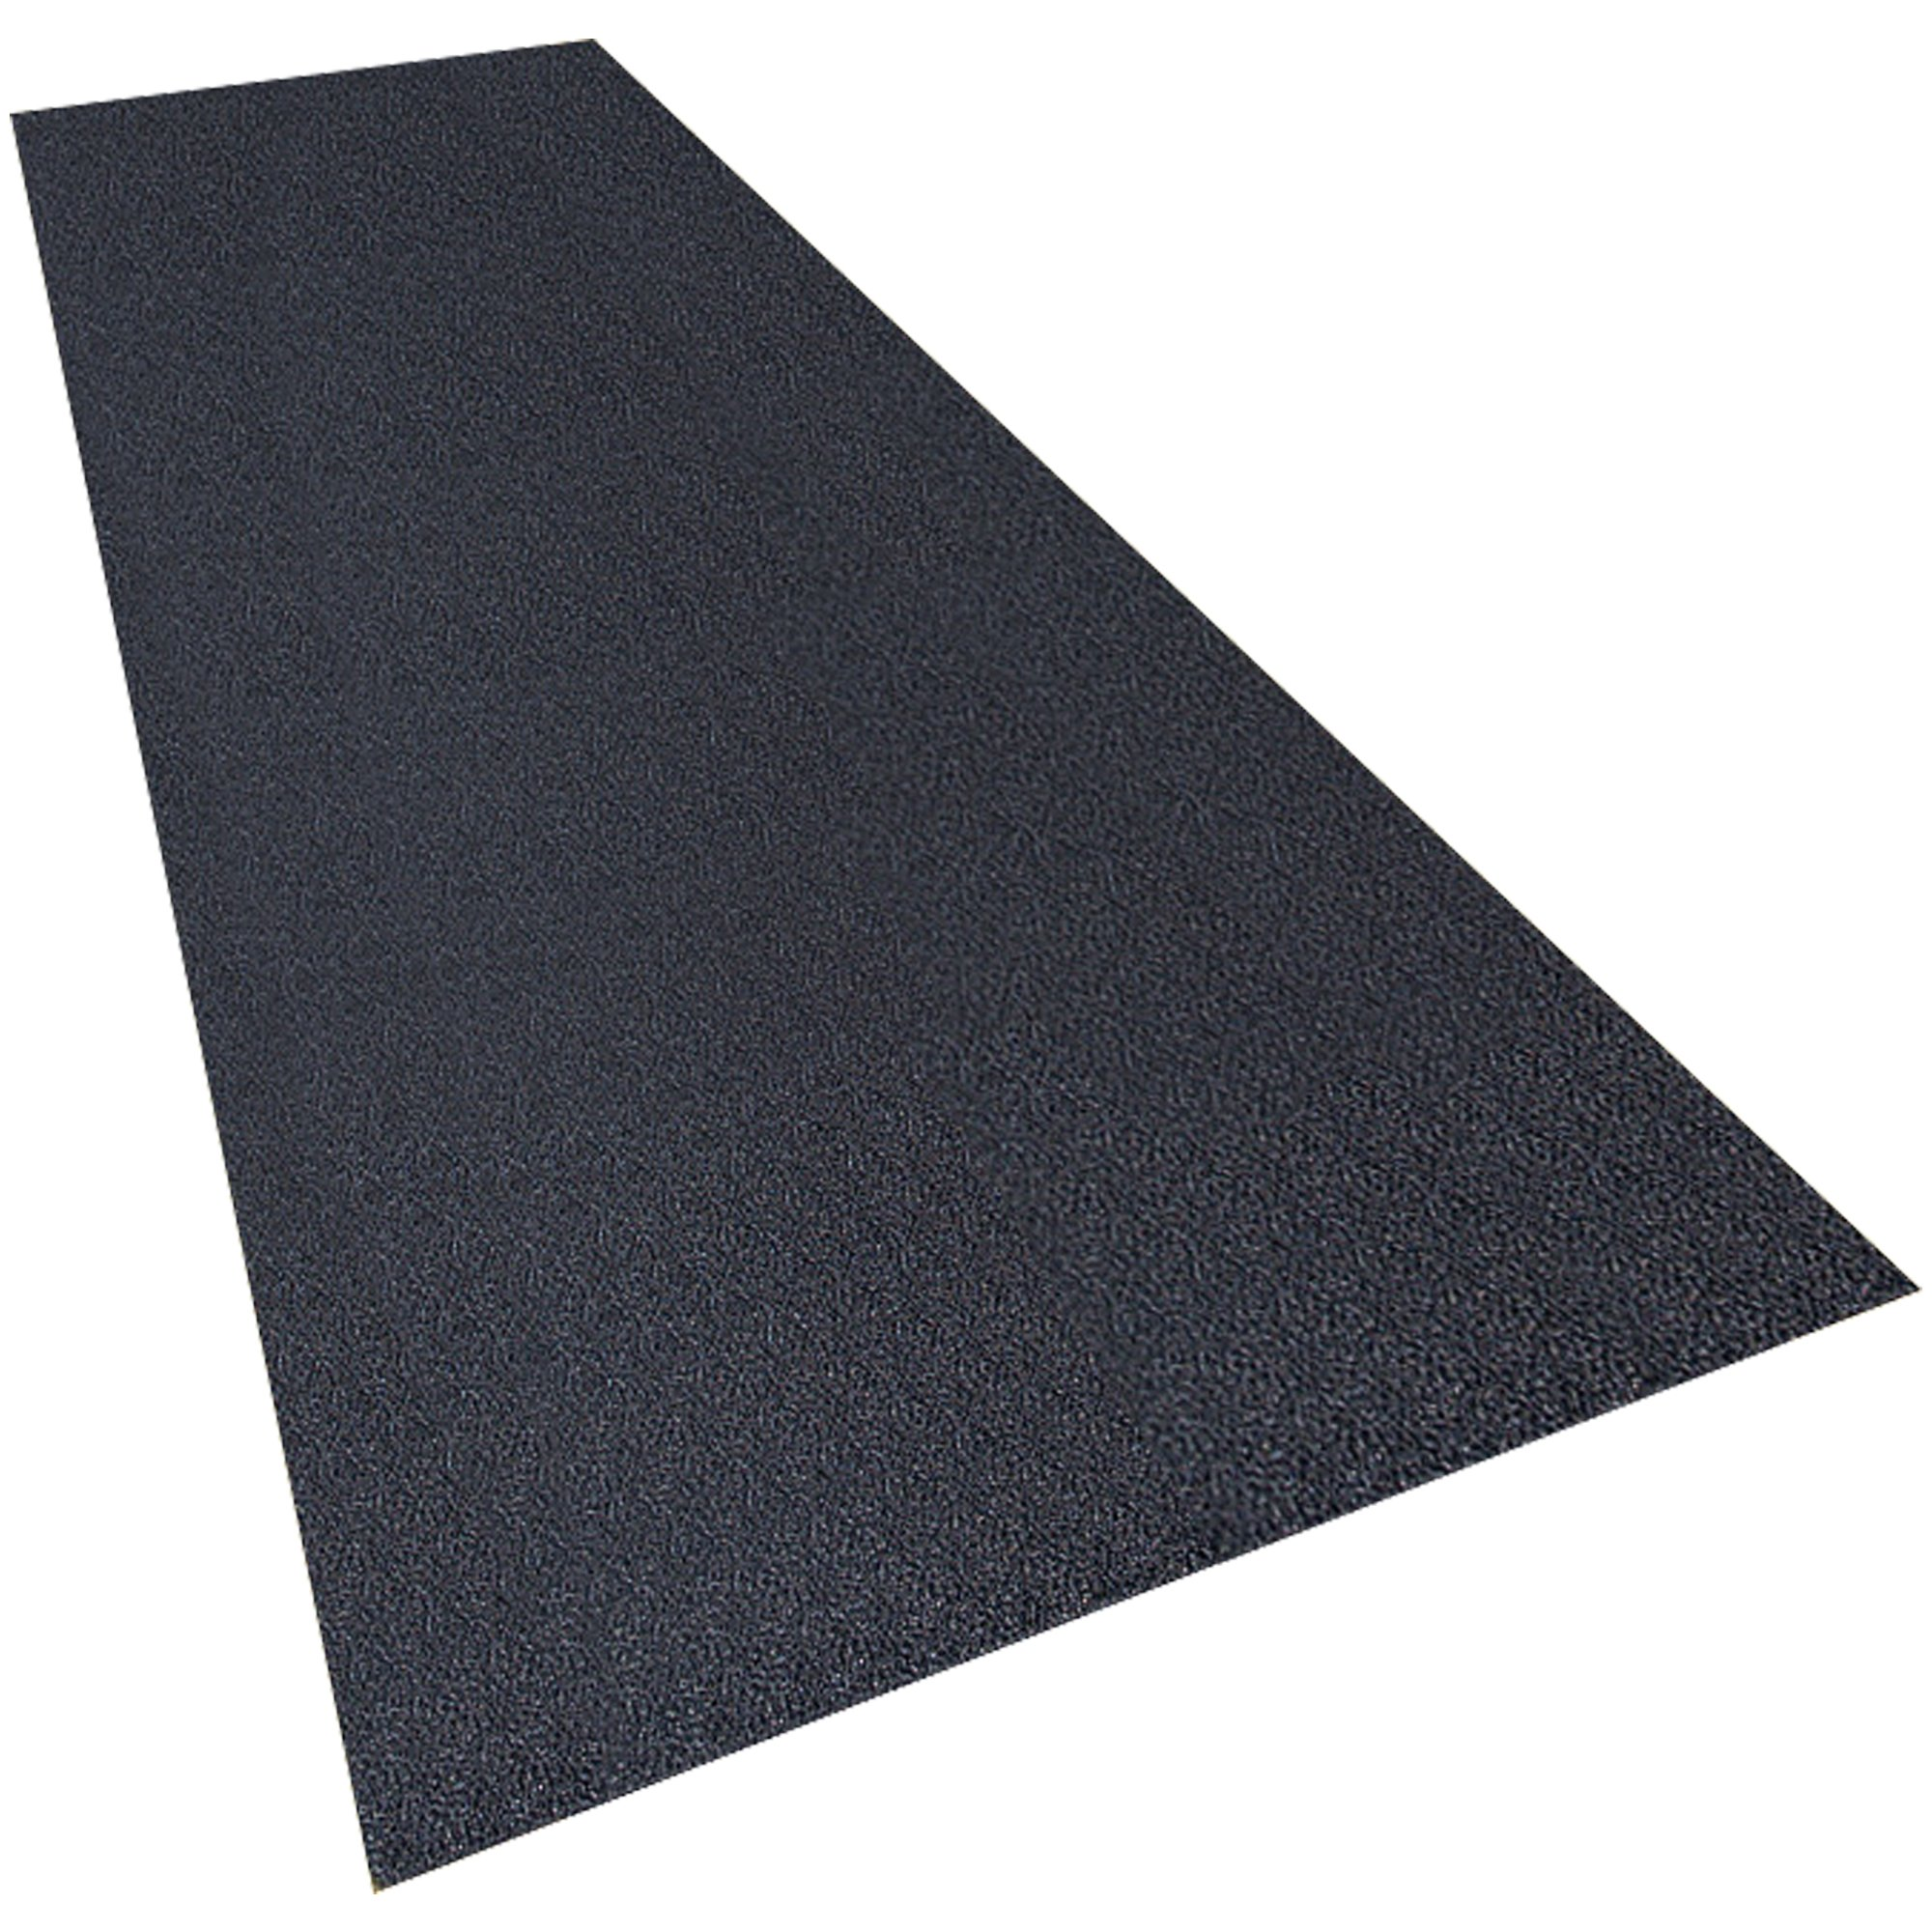 3 x 12' Black Premium Anti-Fatigue Mat